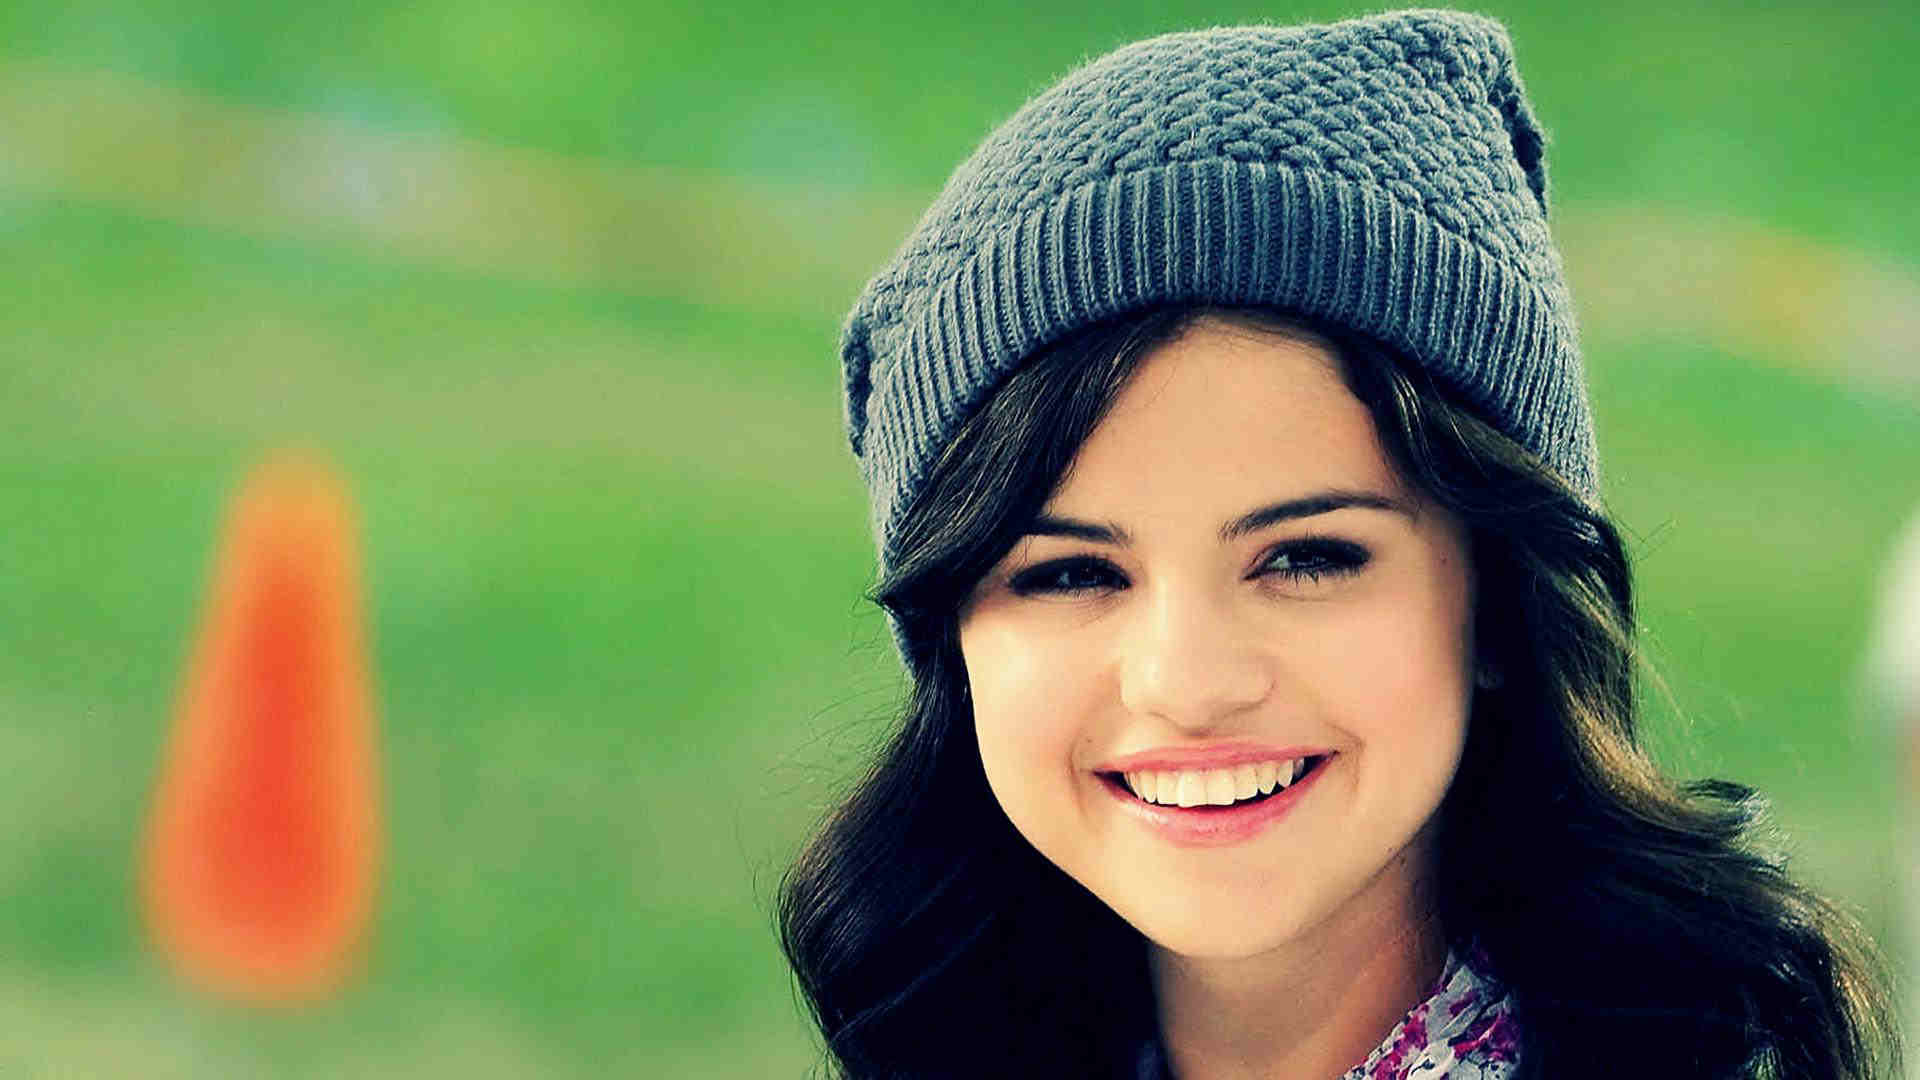 Selena Gomez Beautiful HD Wallpapers 2015 1920x1080